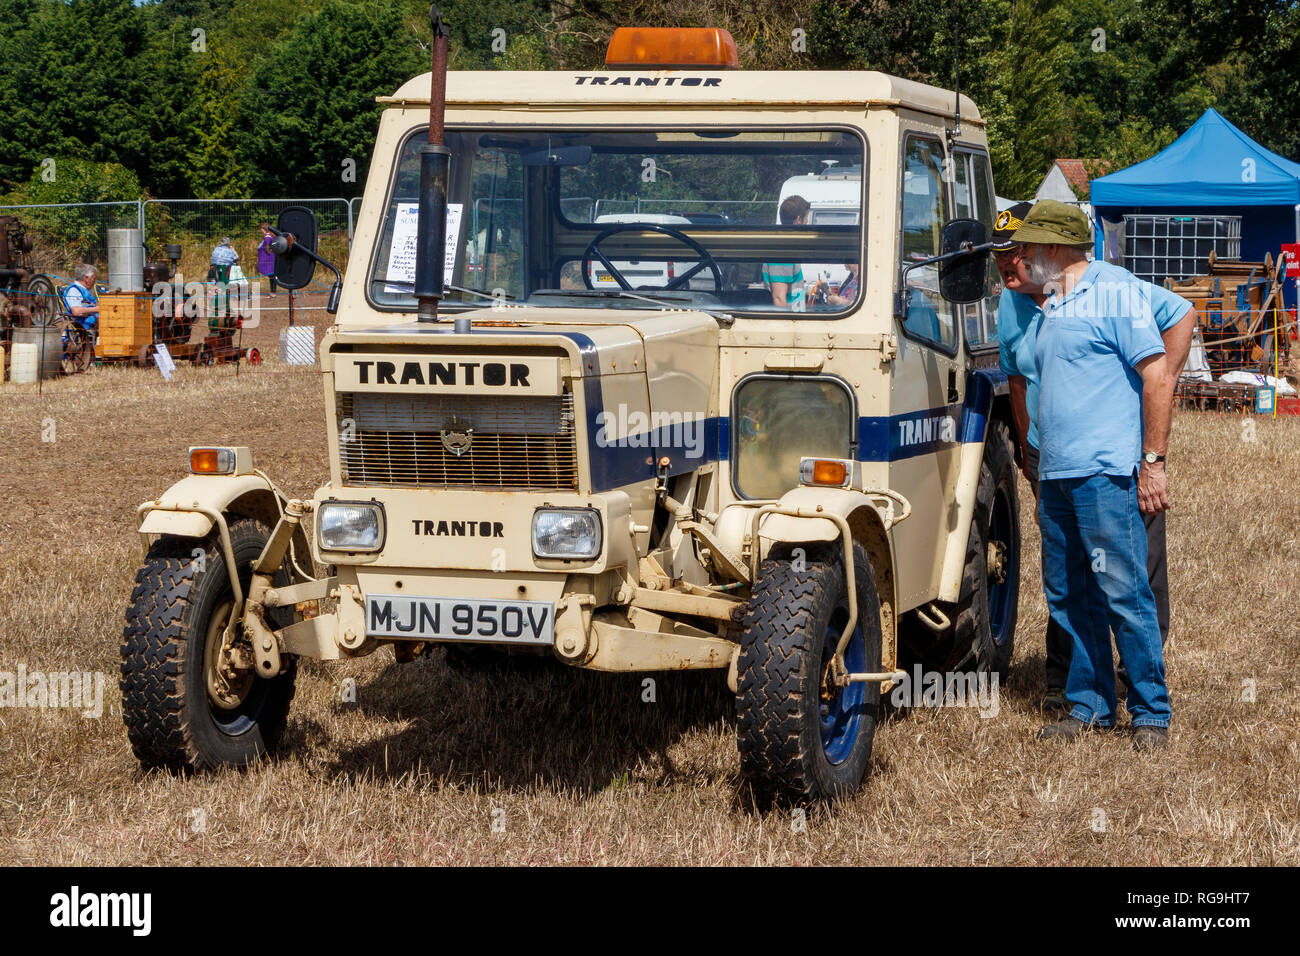 1980 Trantor Tractor Series 1 agricultural vehicle designed for multi-purpose uses except land work. On show at an agricultural show in Norfolk, UK - Stock Image